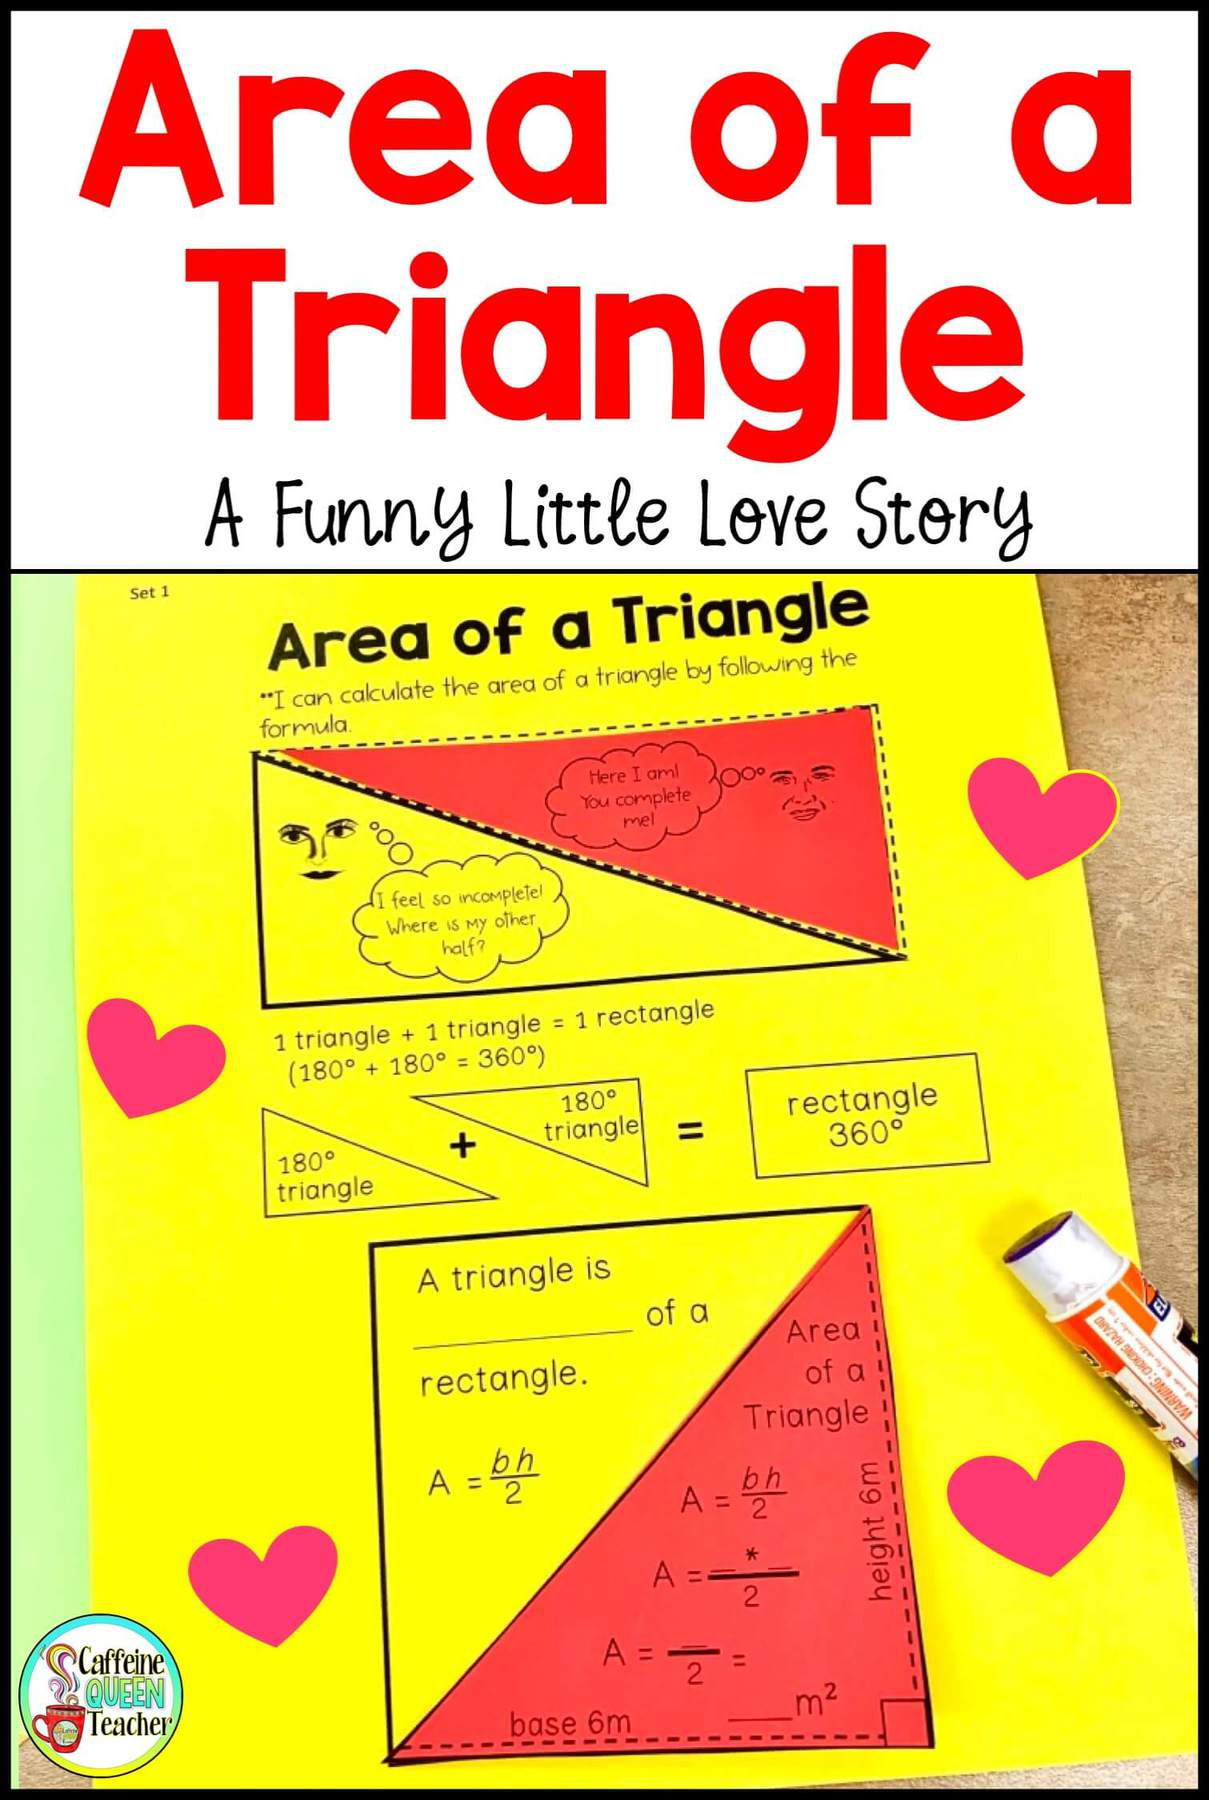 area-of-a-triangle-foldable-activity